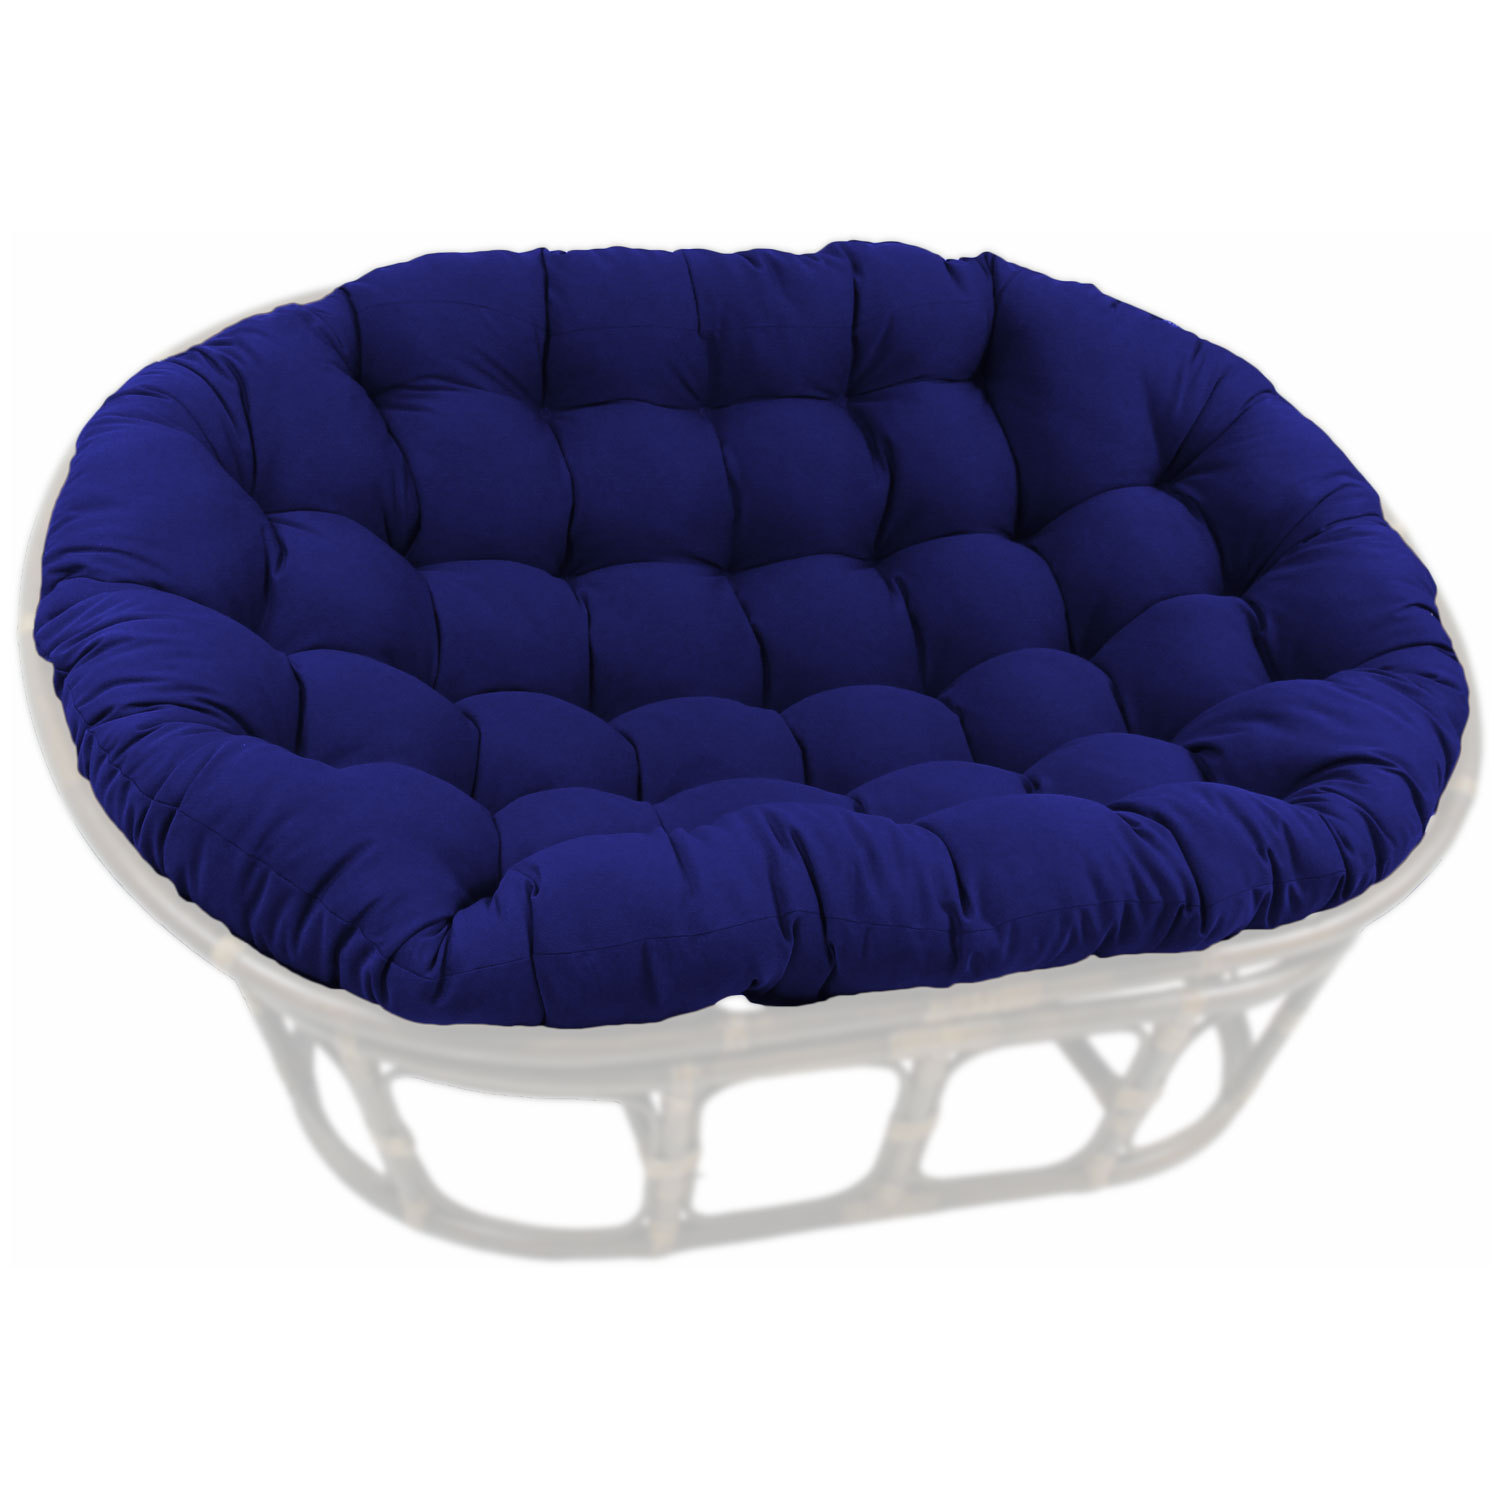 Charmant 60u0027u0027 X 48u0027u0027 Solid Twill Tufted Double Papasan Cushion ...